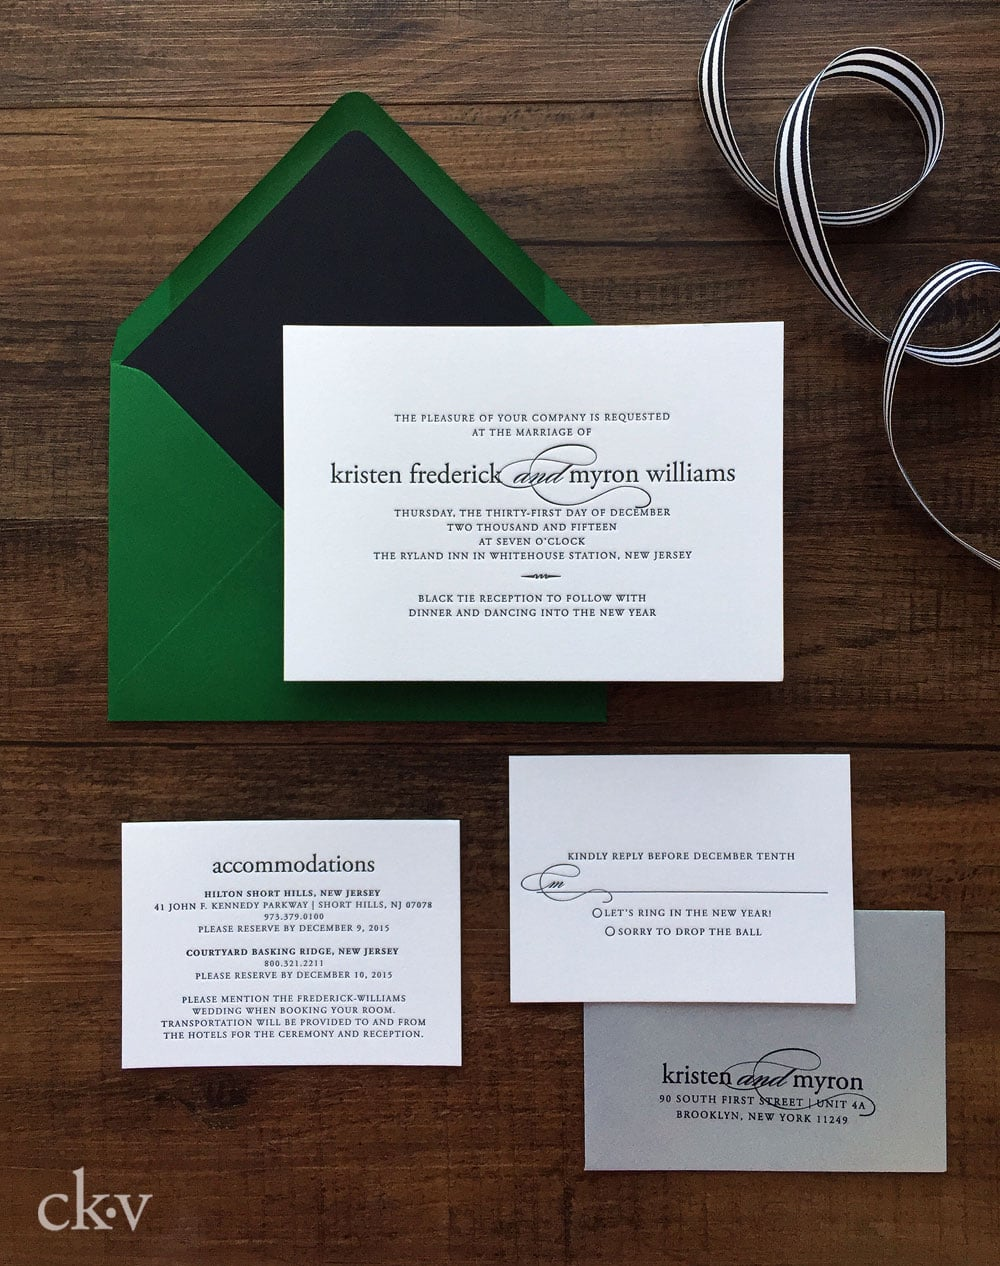 Modern ultra thick letterpress wedding invitation suite for a modern couple's NYE wedding.